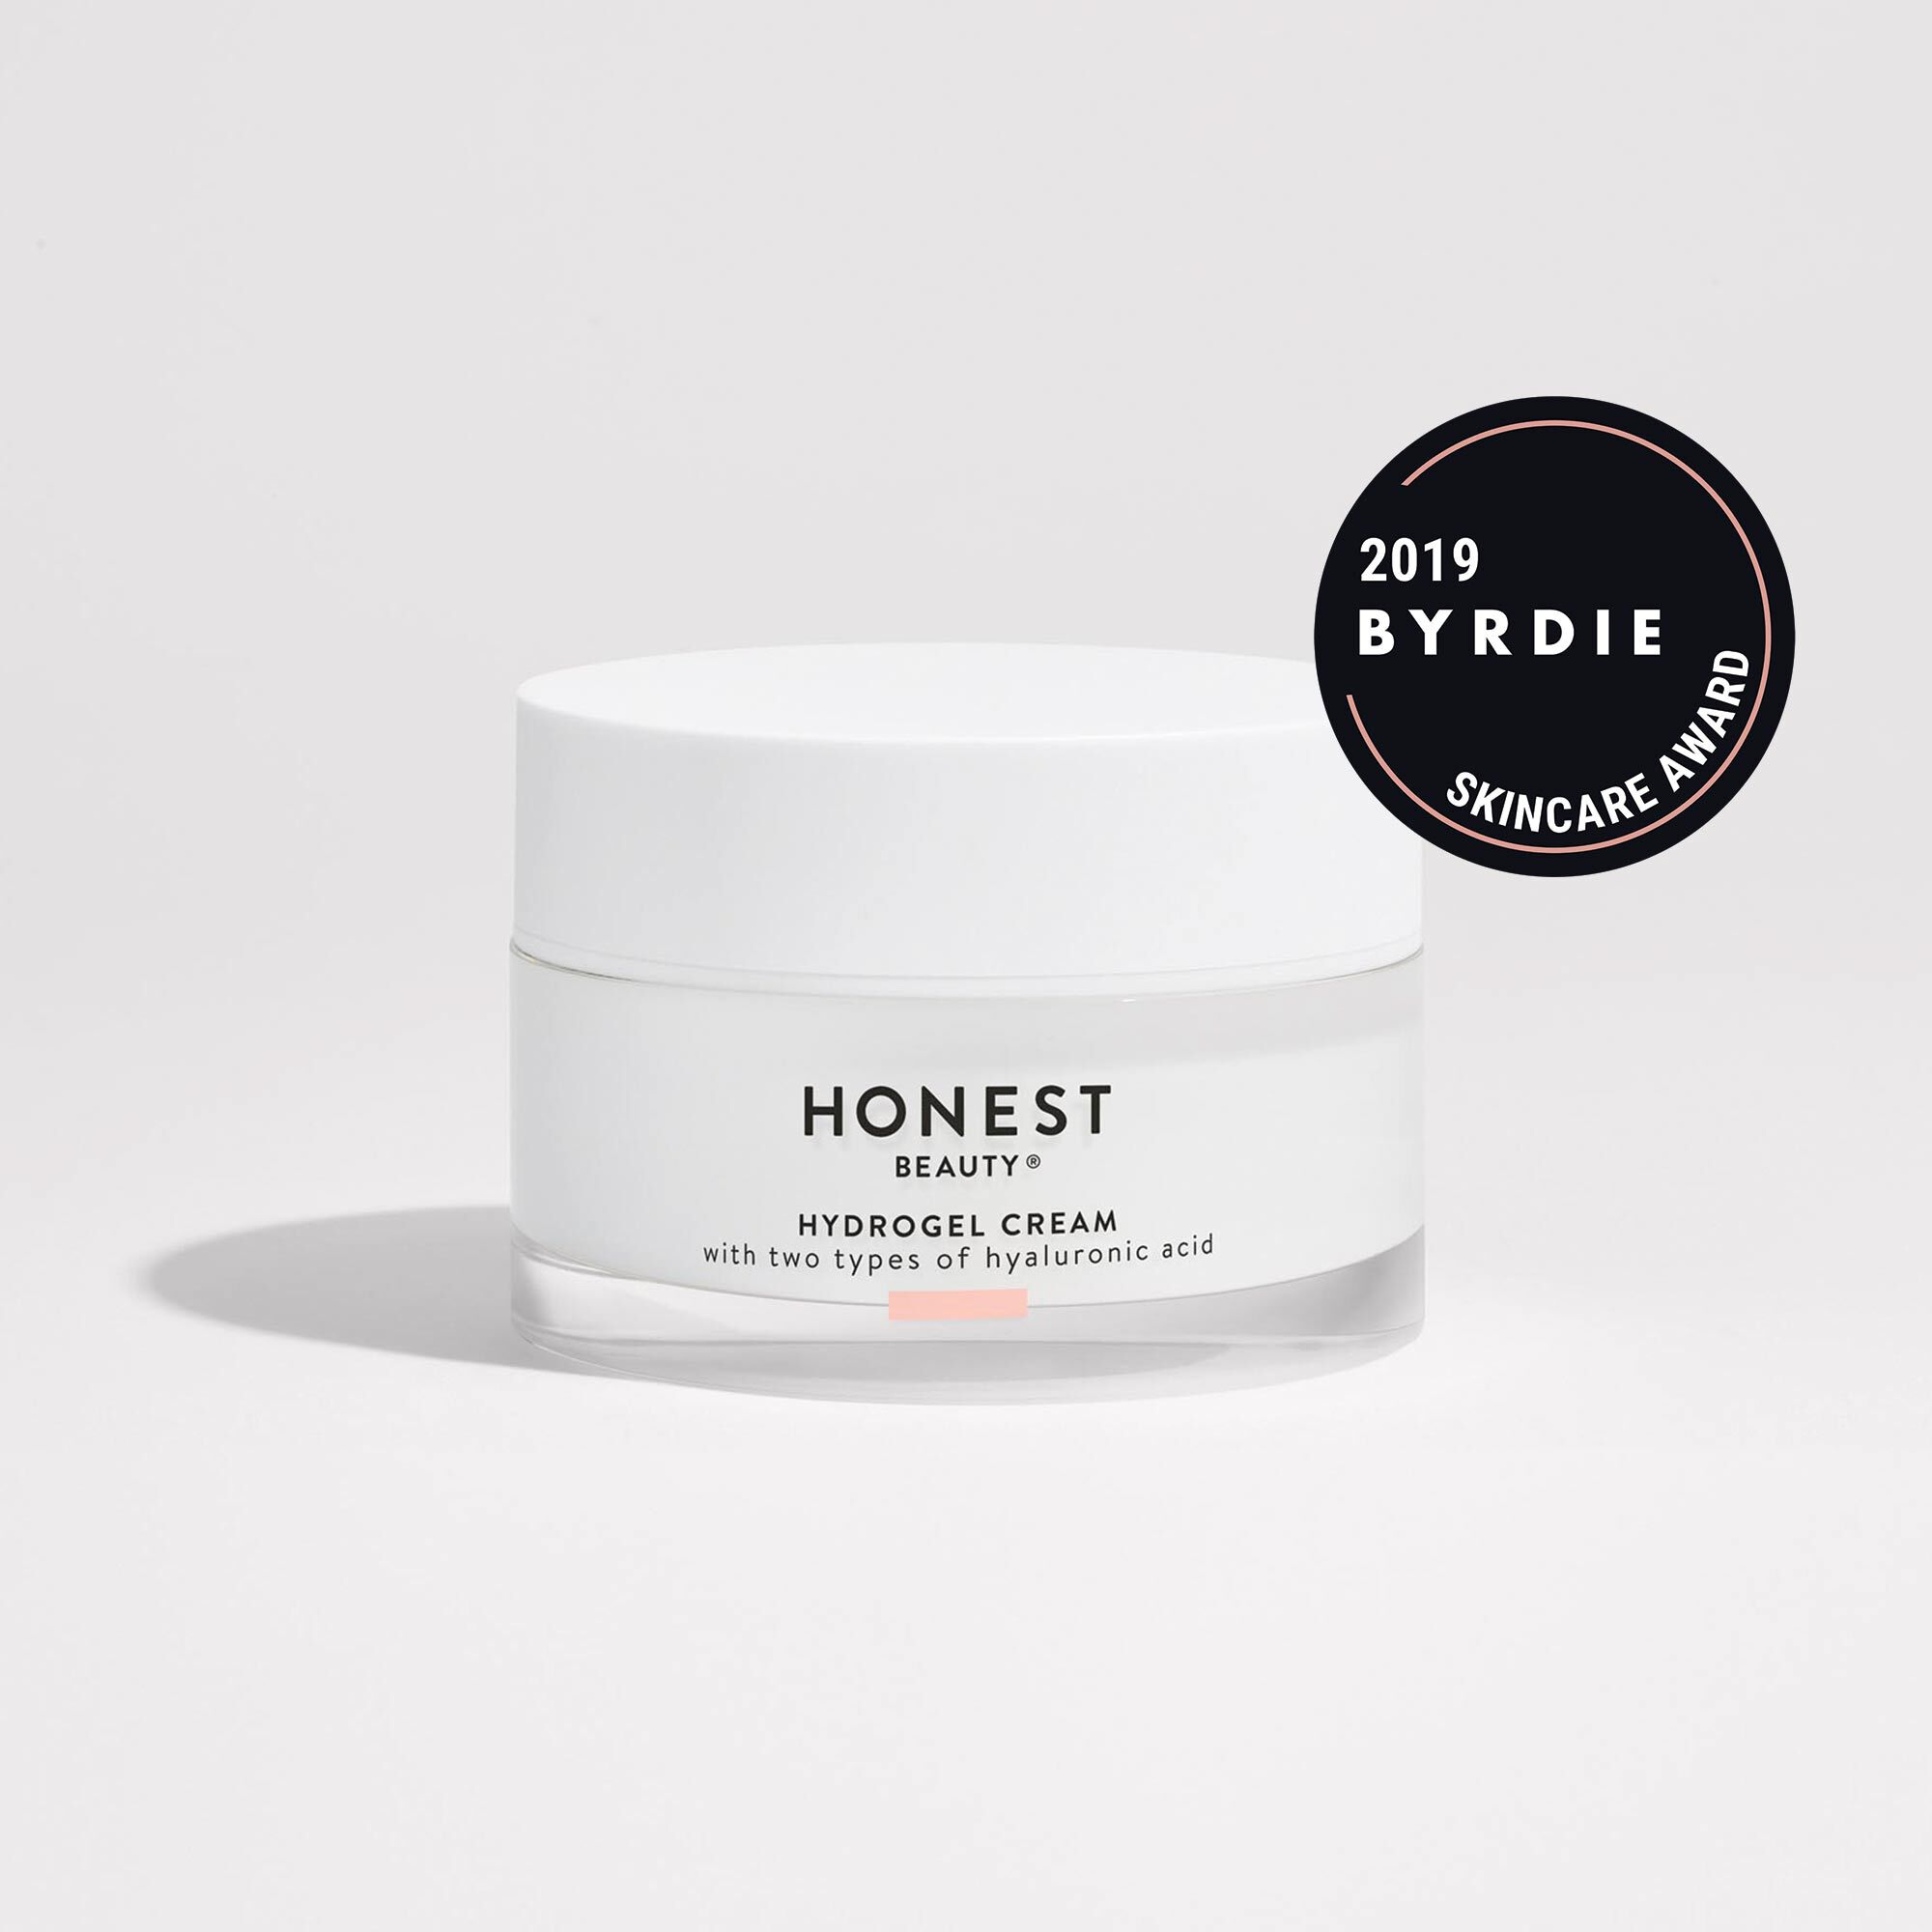 Honest Hydrogel Cream